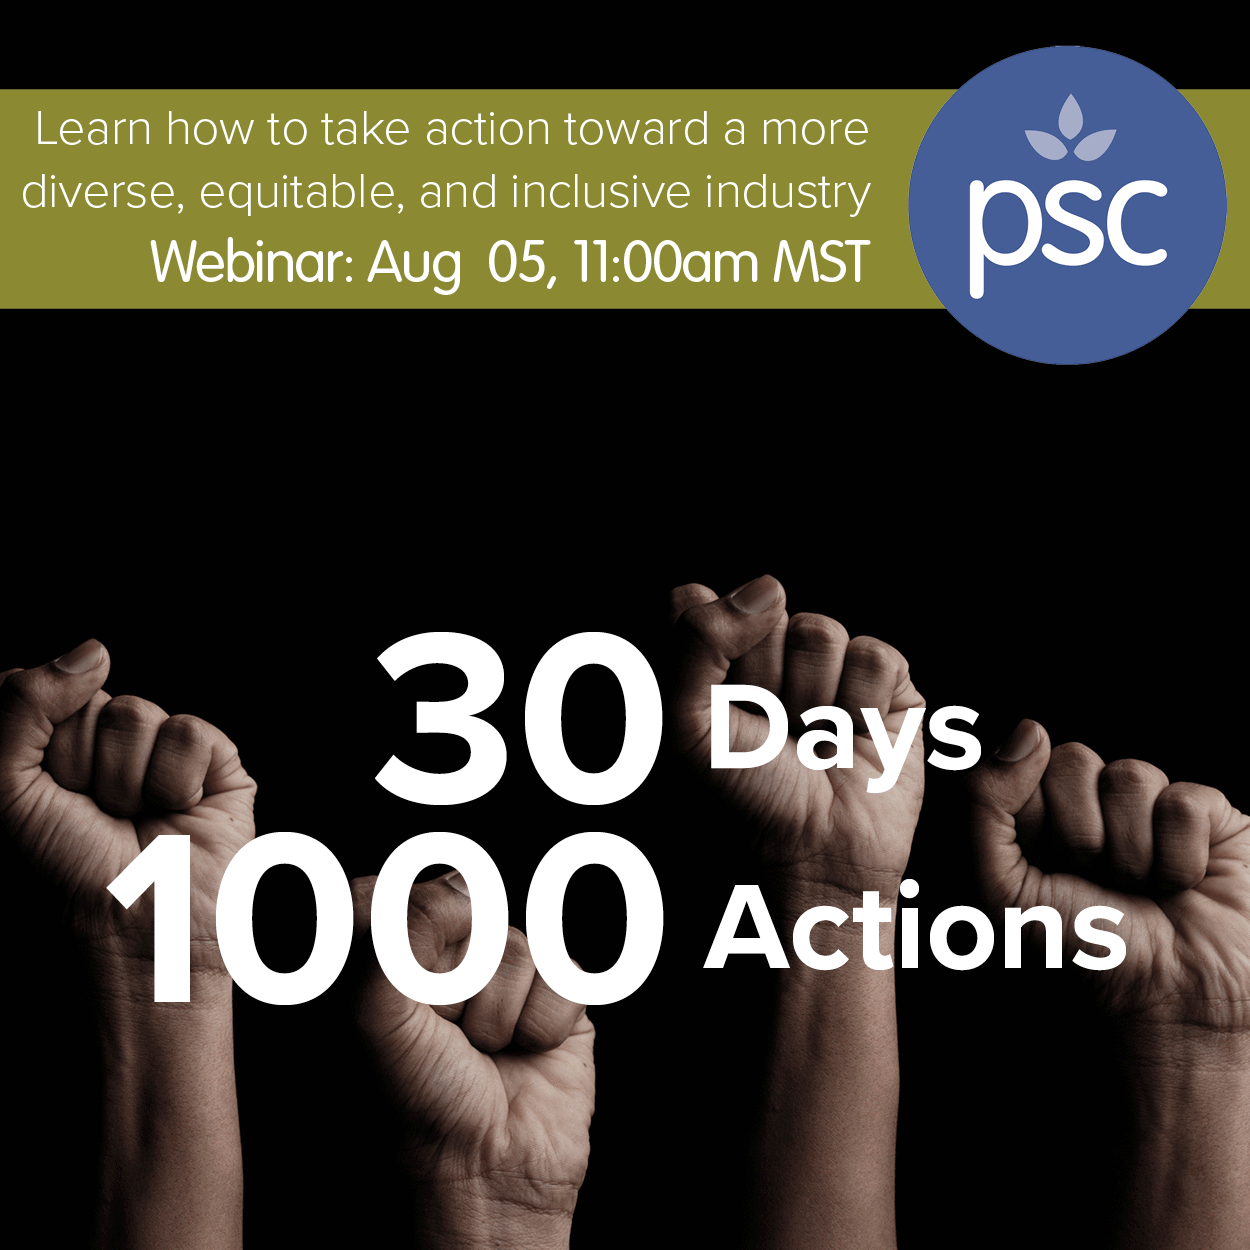 PSC Challenges The Pet Industry To Take 1000 Actions Toward Diversity, Equity and Inclusion